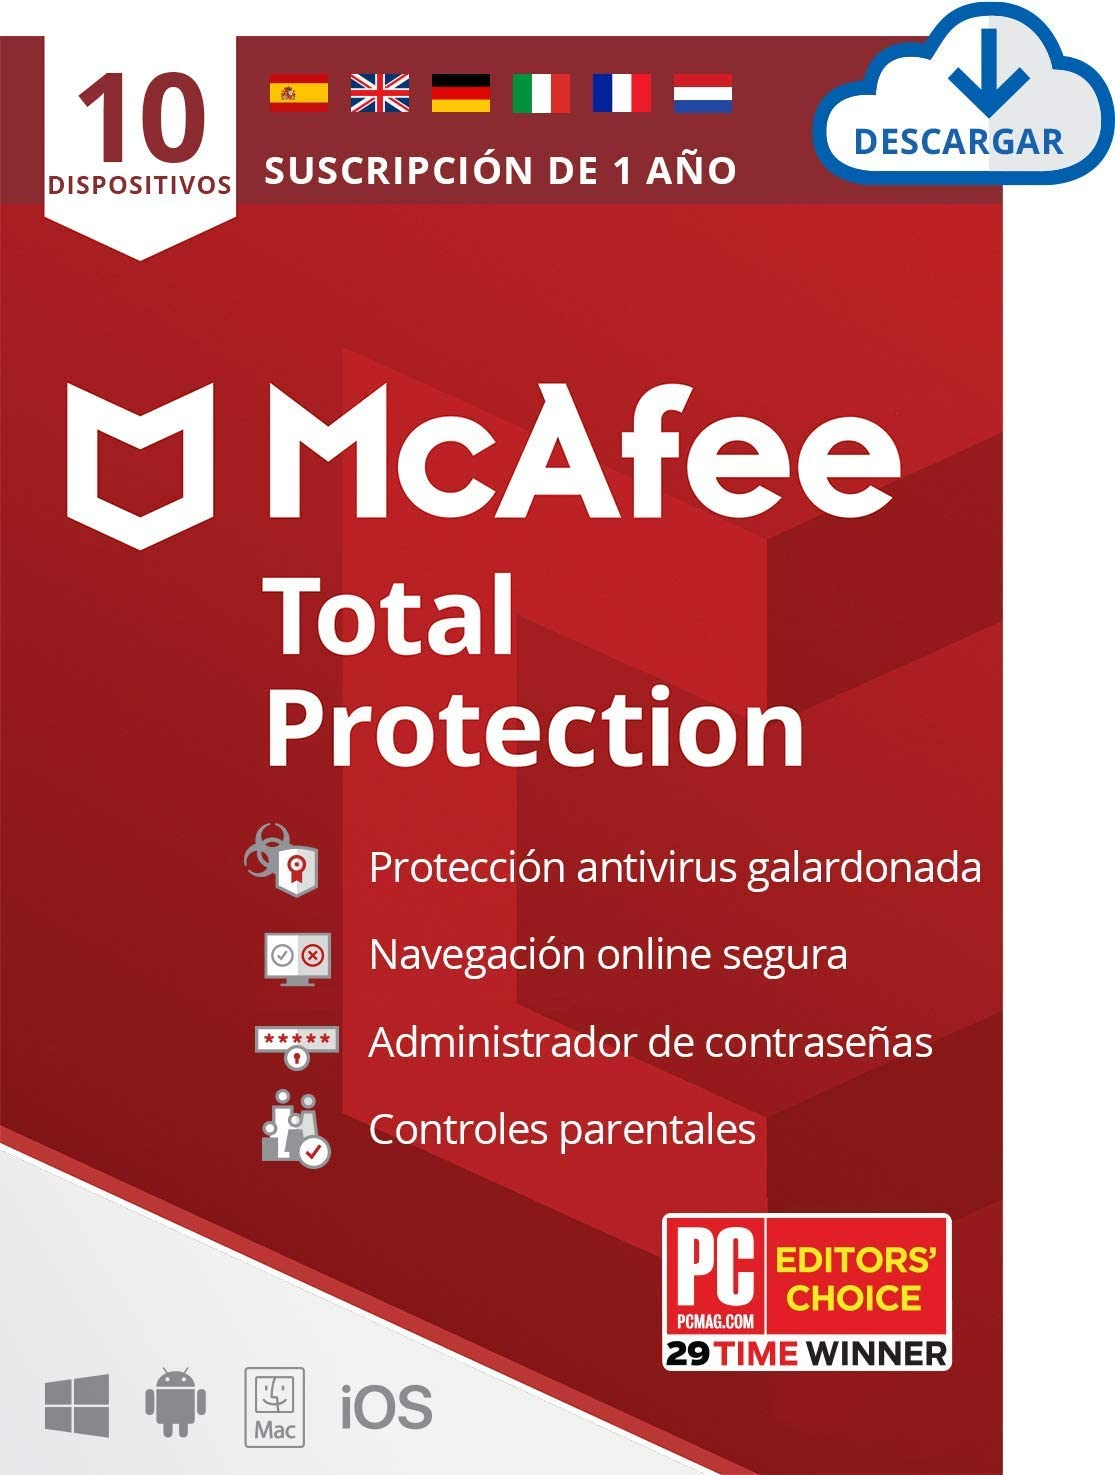 McAfee Total Protection 2020, 10 Dispositivos, 1 Año, Software Antivirus, Seguridad de Internet, Móvil, Control Parental, Compatible con PC/Mac/Android/iOS, Edición Europea, Descarga